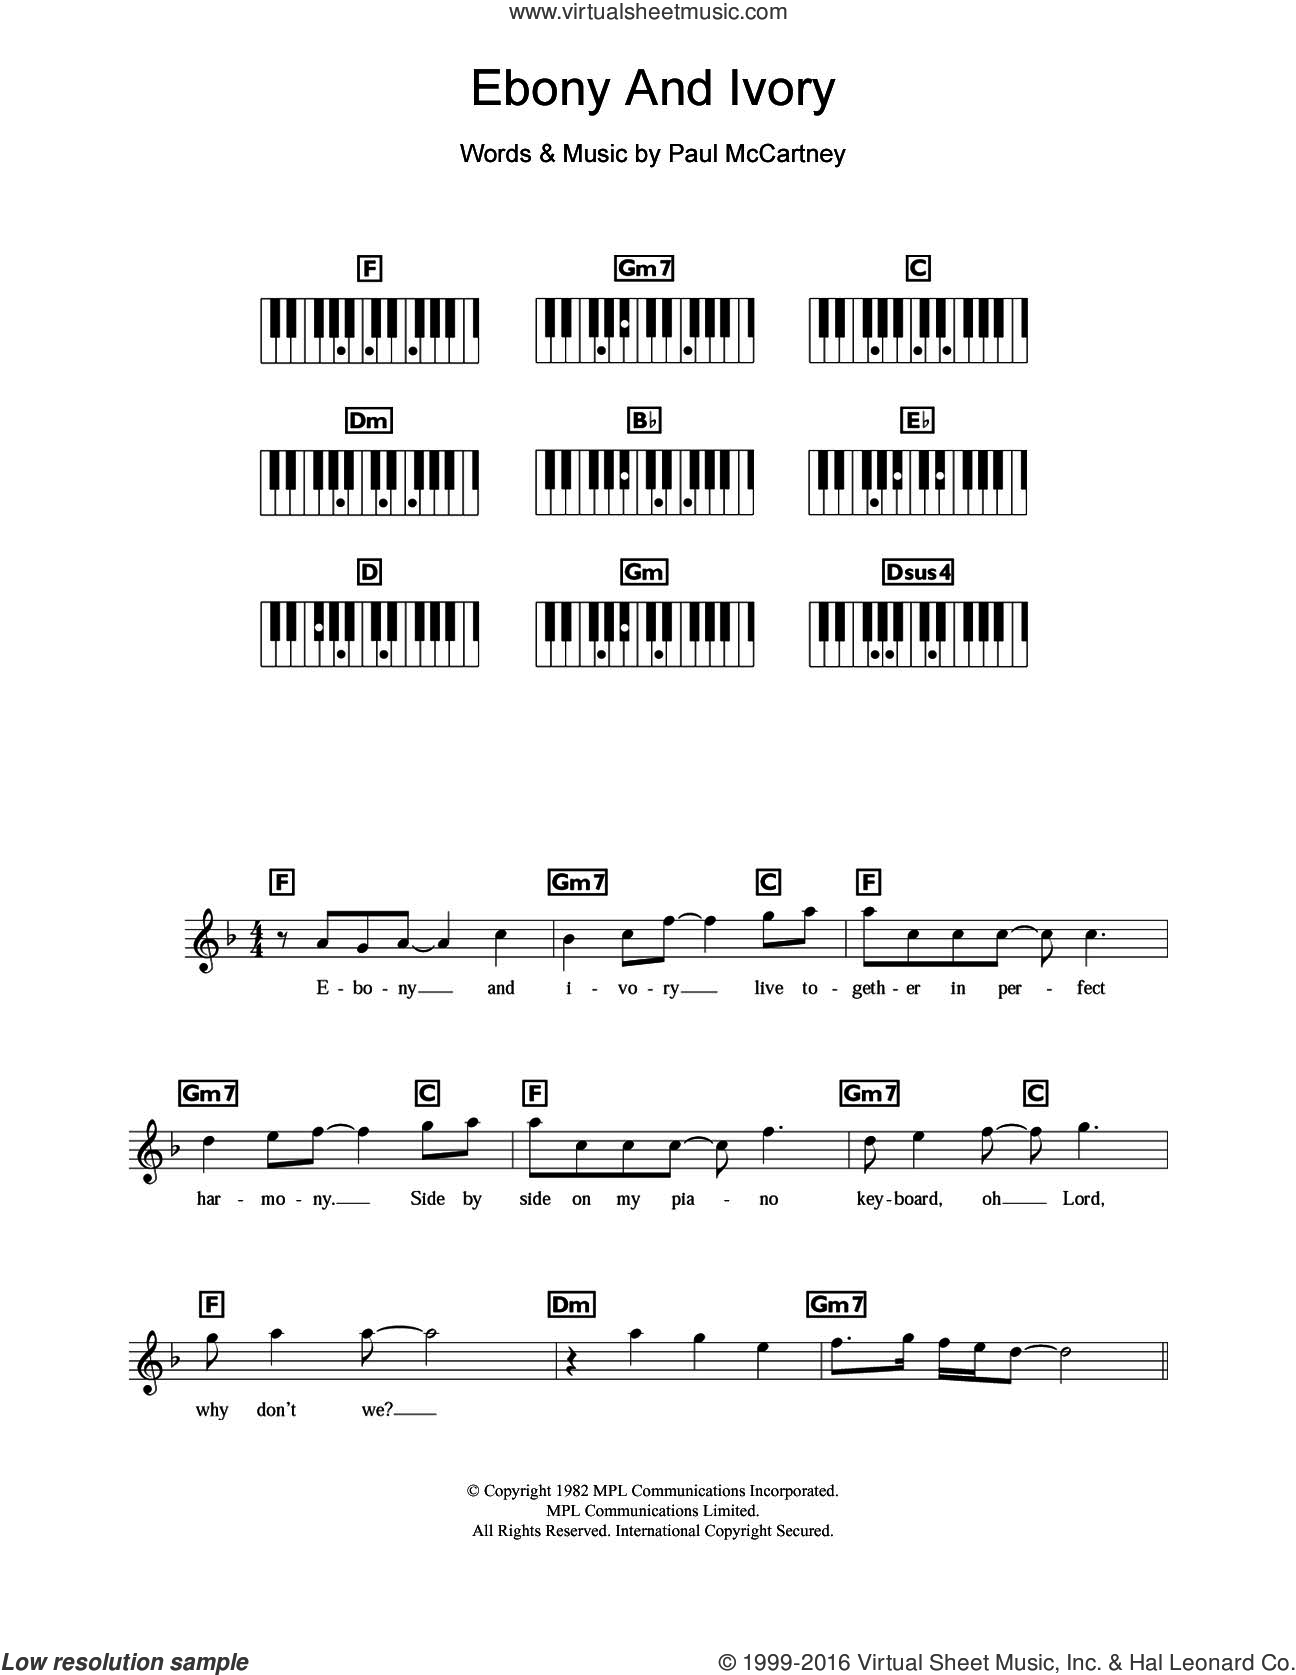 Ebony And Ivory sheet music for piano solo (chords, lyrics, melody) by Paul McCartney and Stevie Wonder. Score Image Preview.